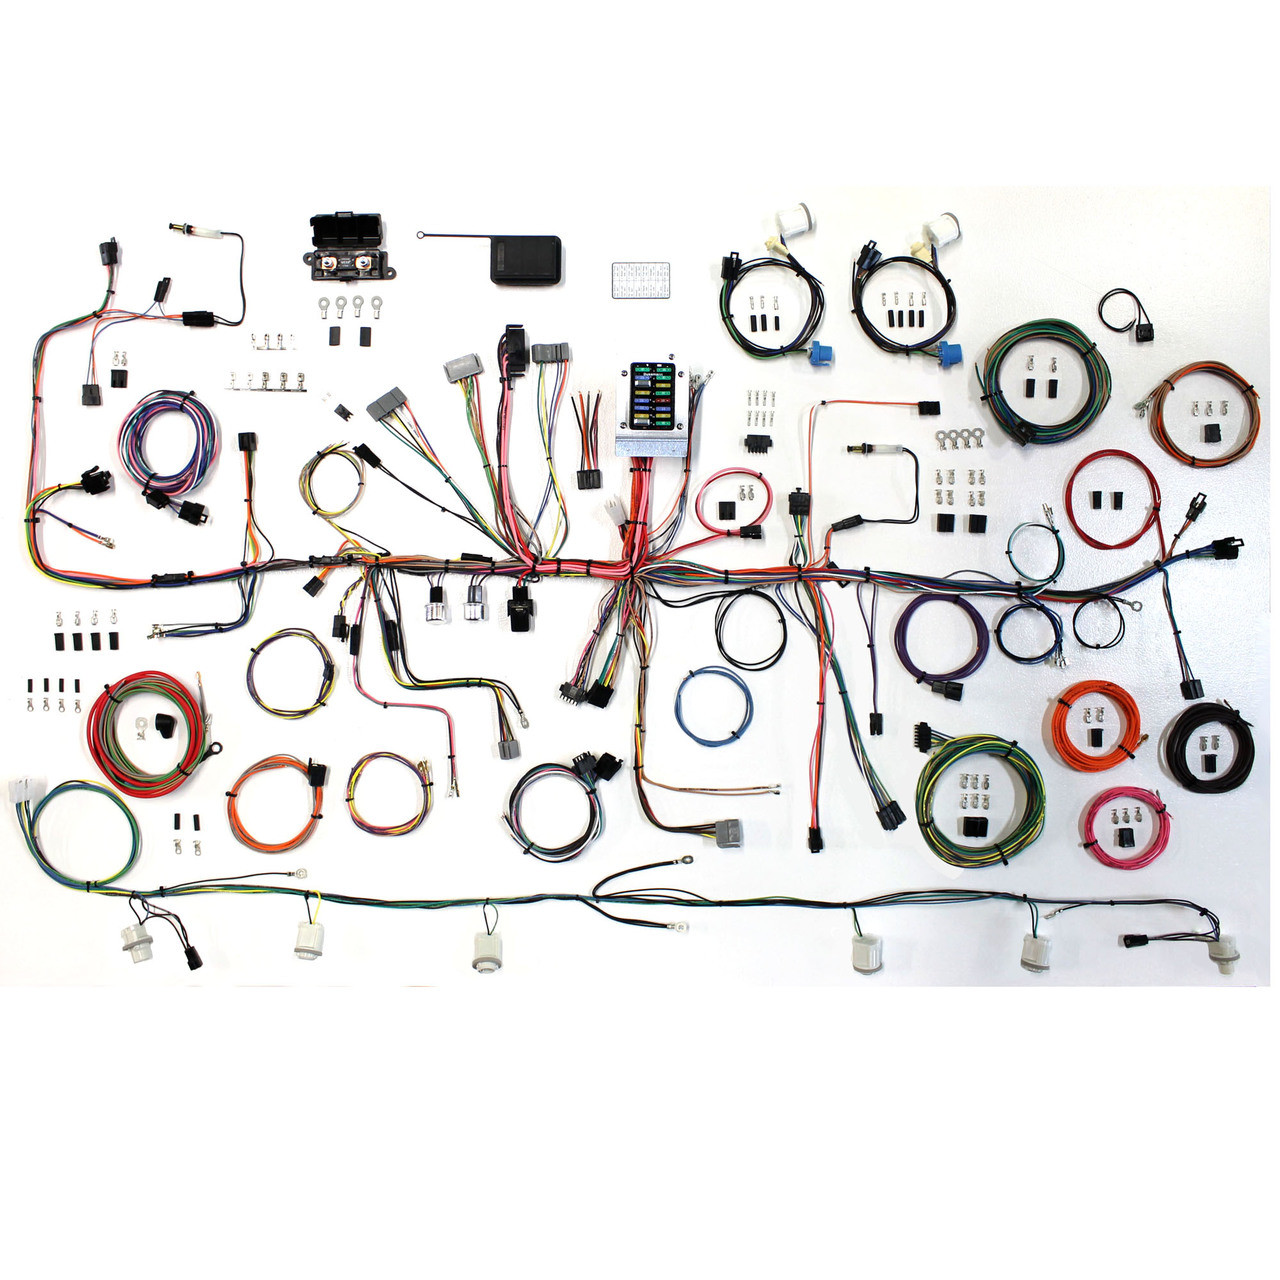 hight resolution of american autowire 1987 1989 ford mustang fox body classic update complete wiring kit